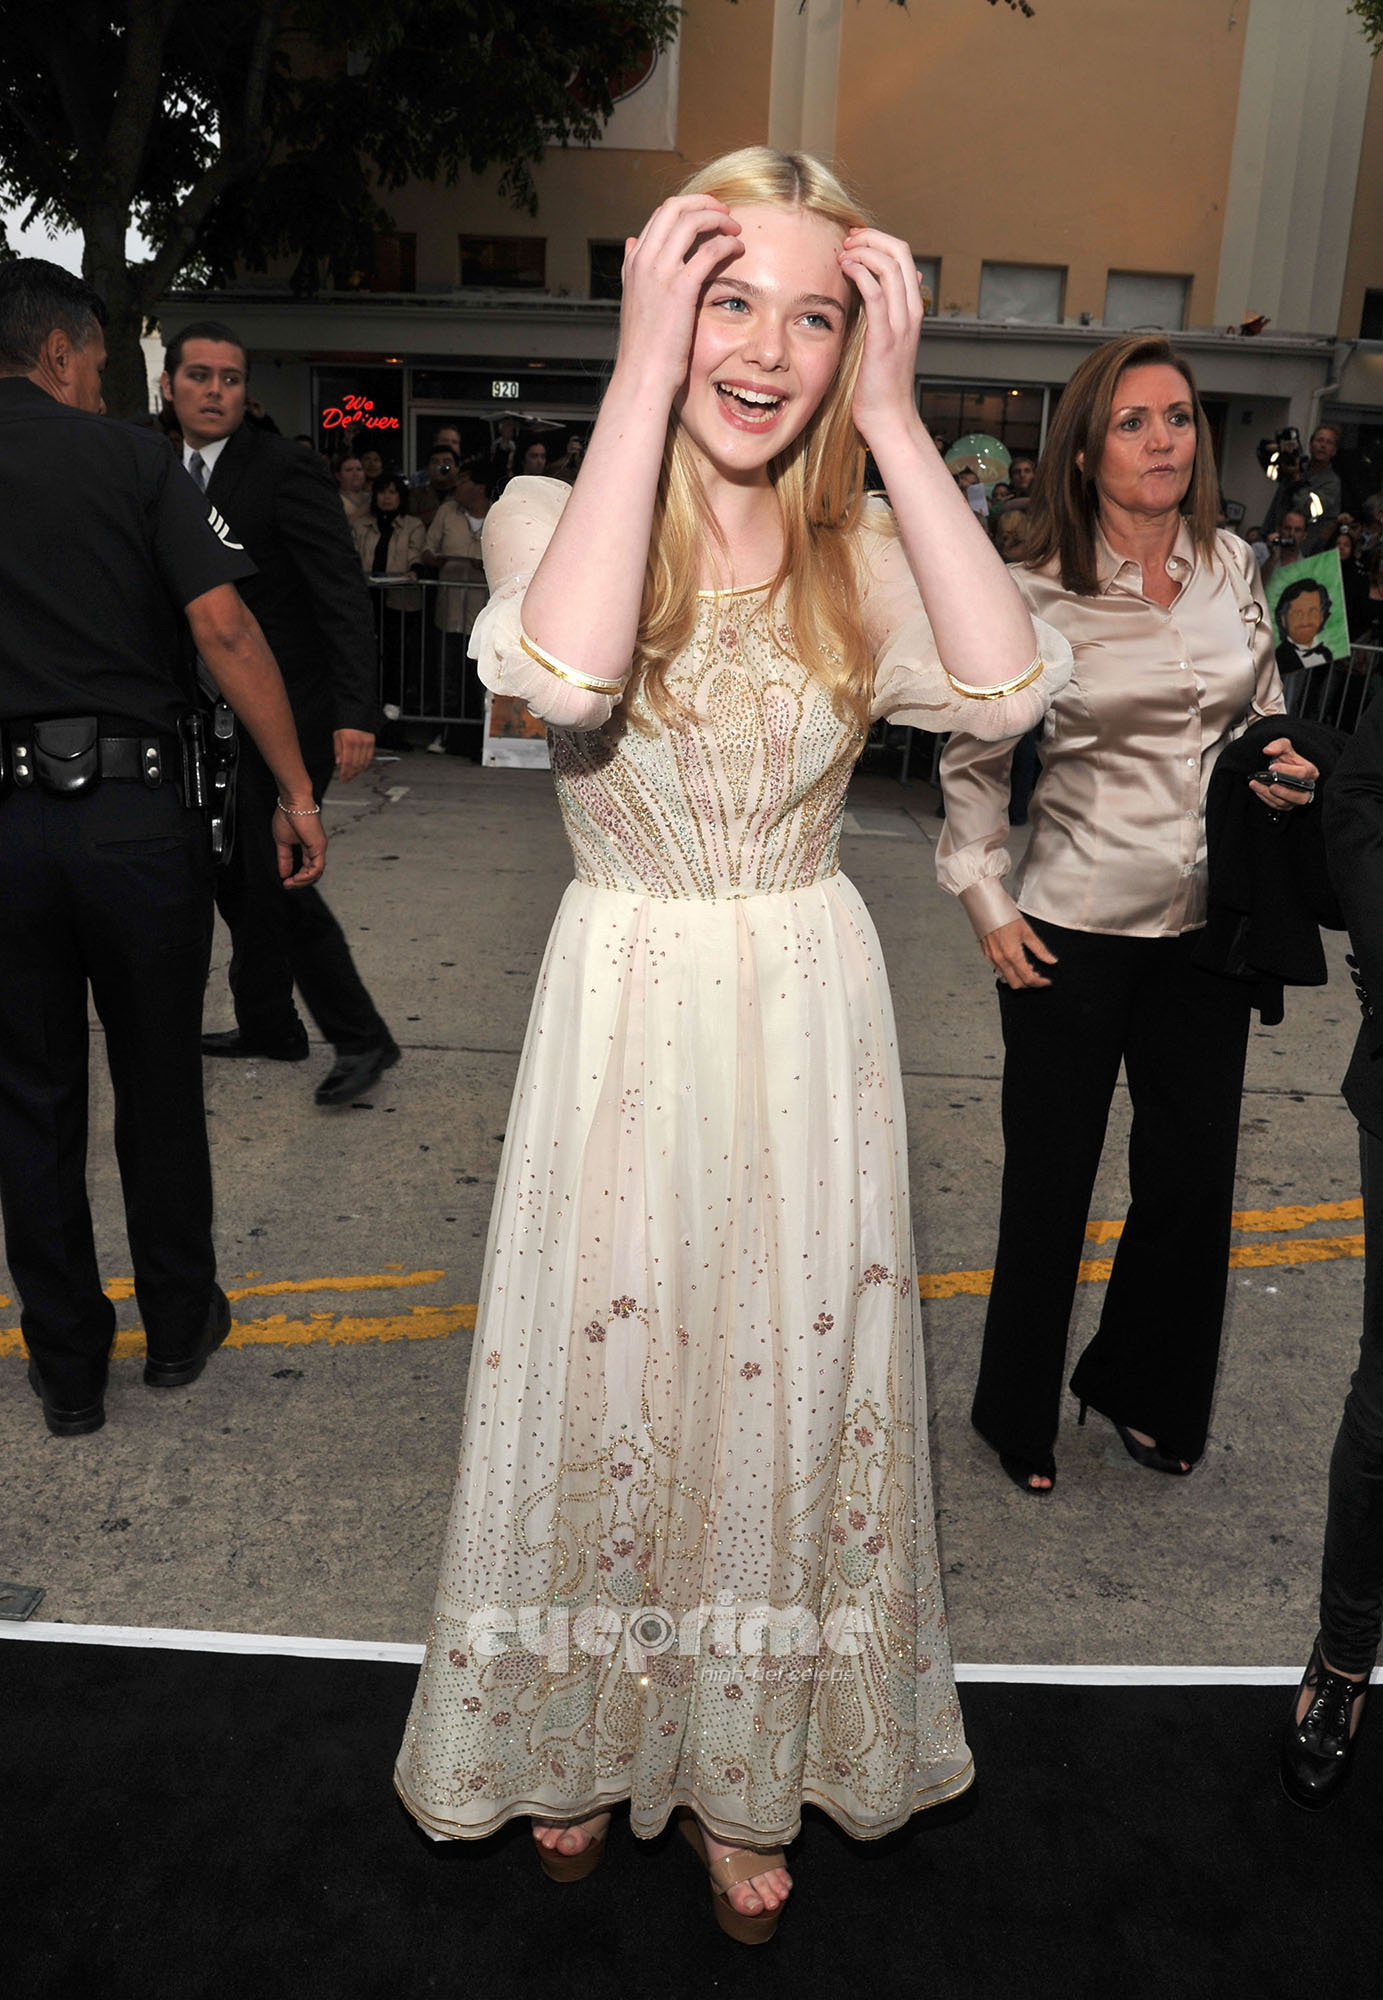 Elle Fanning HQ http://www.fanpop.com/clubs/elle-fanning/images/22726164/title/super-8-los-angeles-premiere-hq-photo